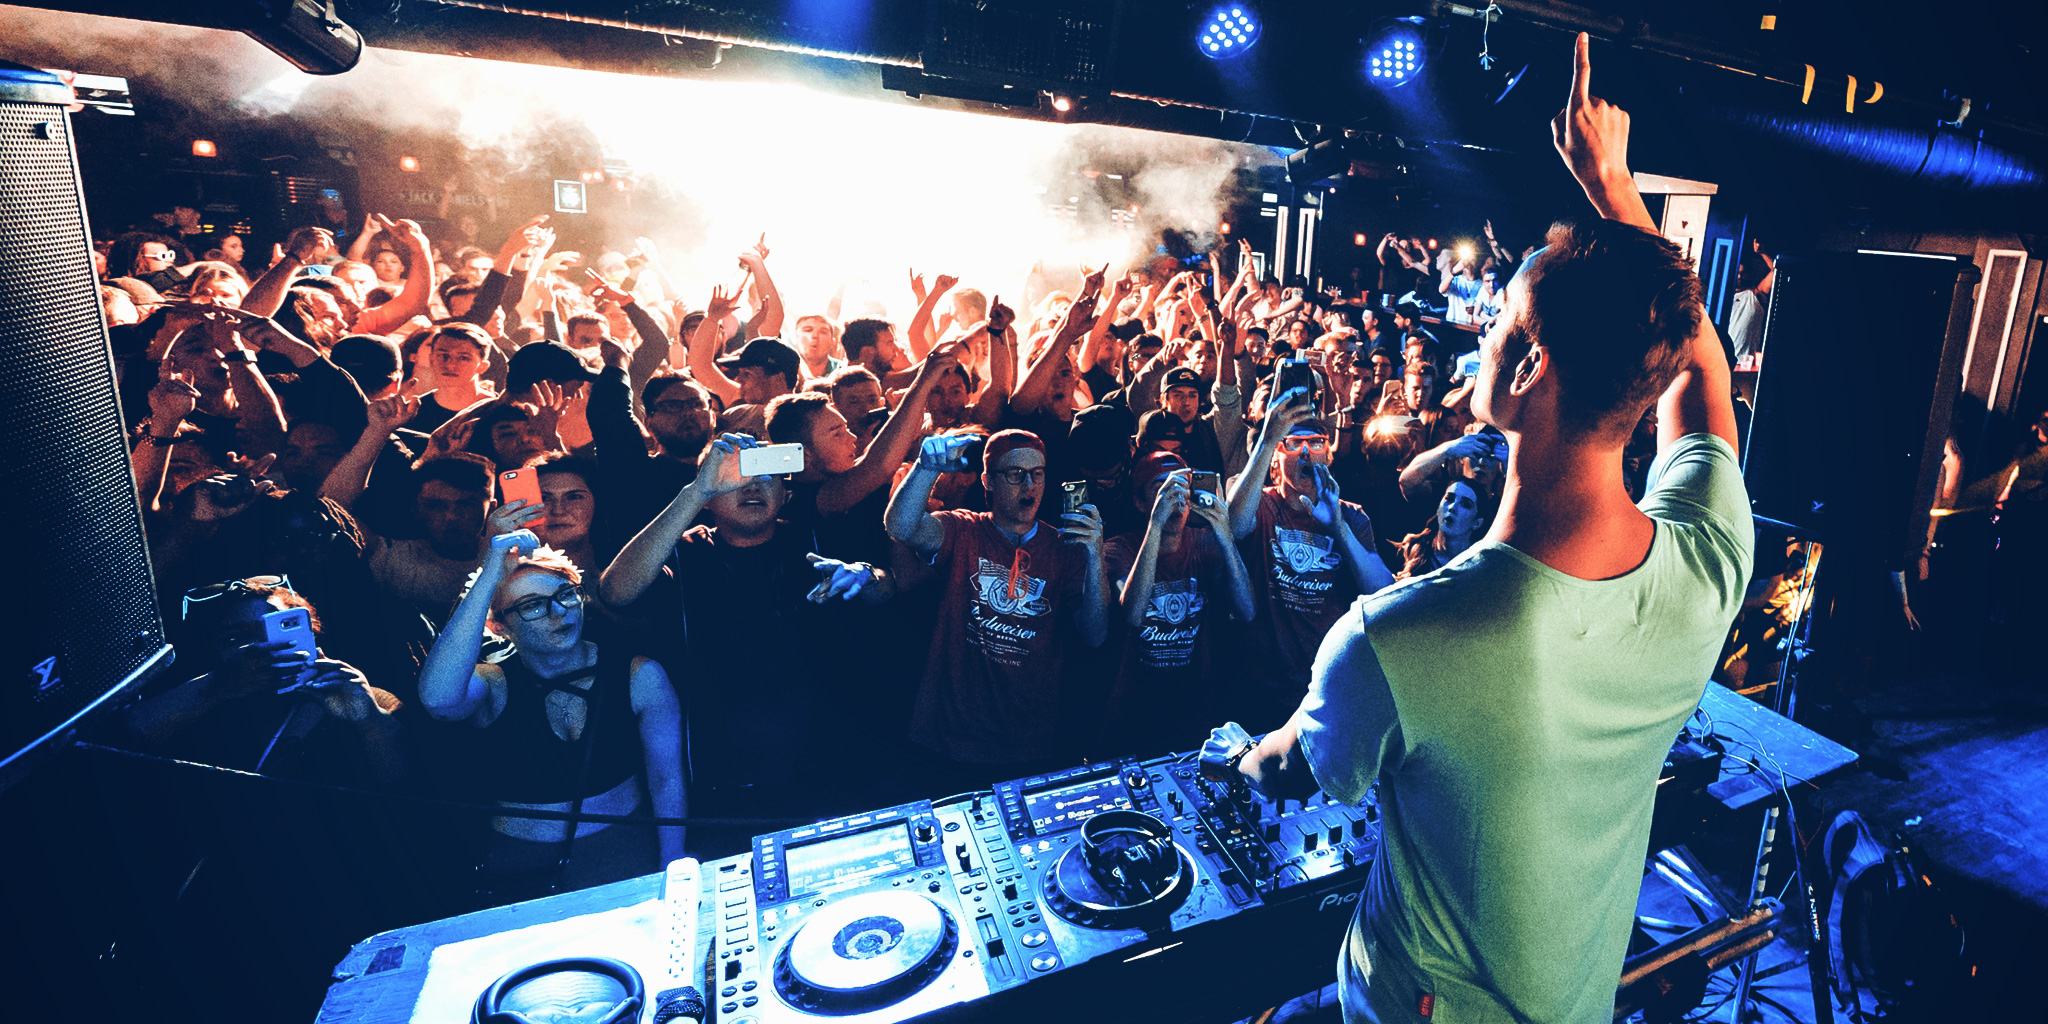 How To Get DJ Gigs: 8 Tips for Beginners